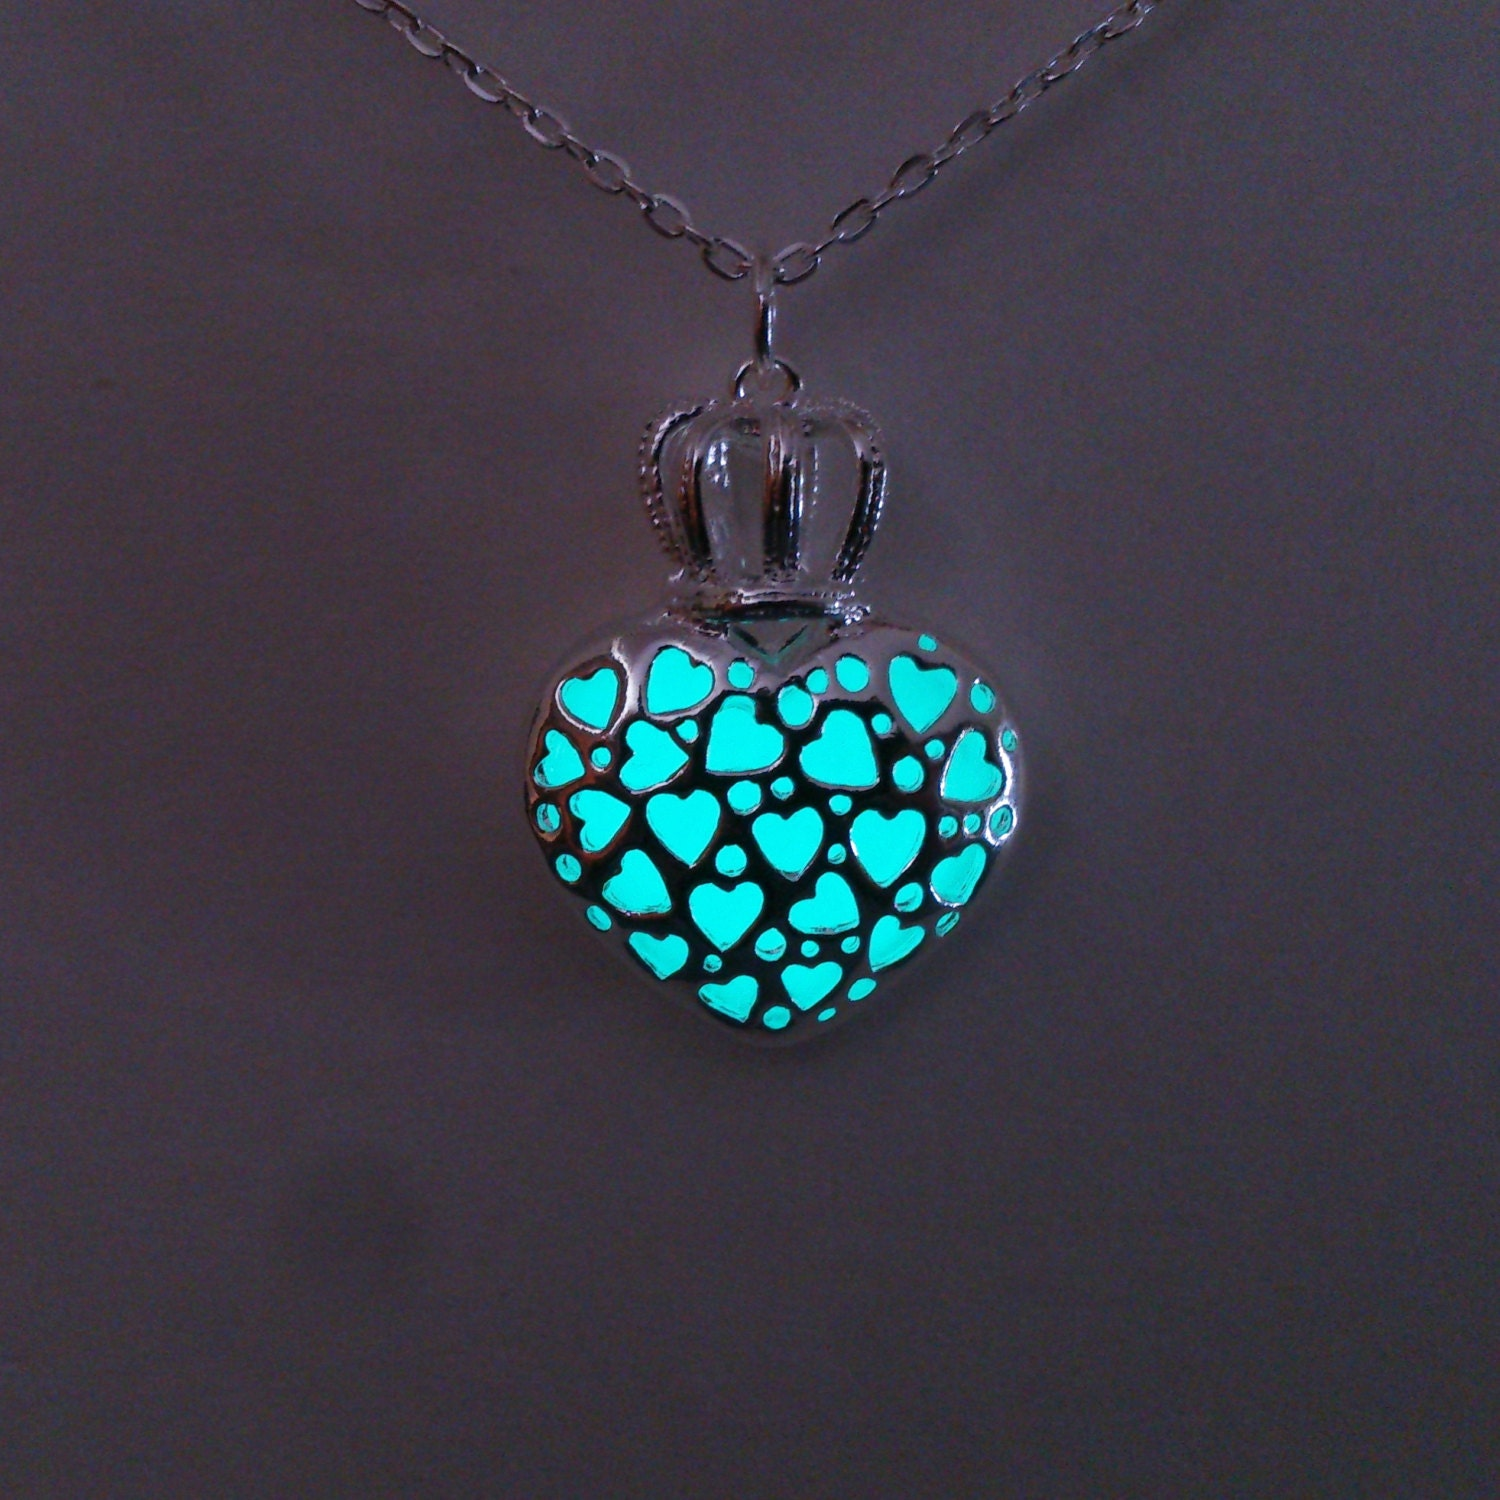 aqua glowing necklace glowing jewelry glow in the